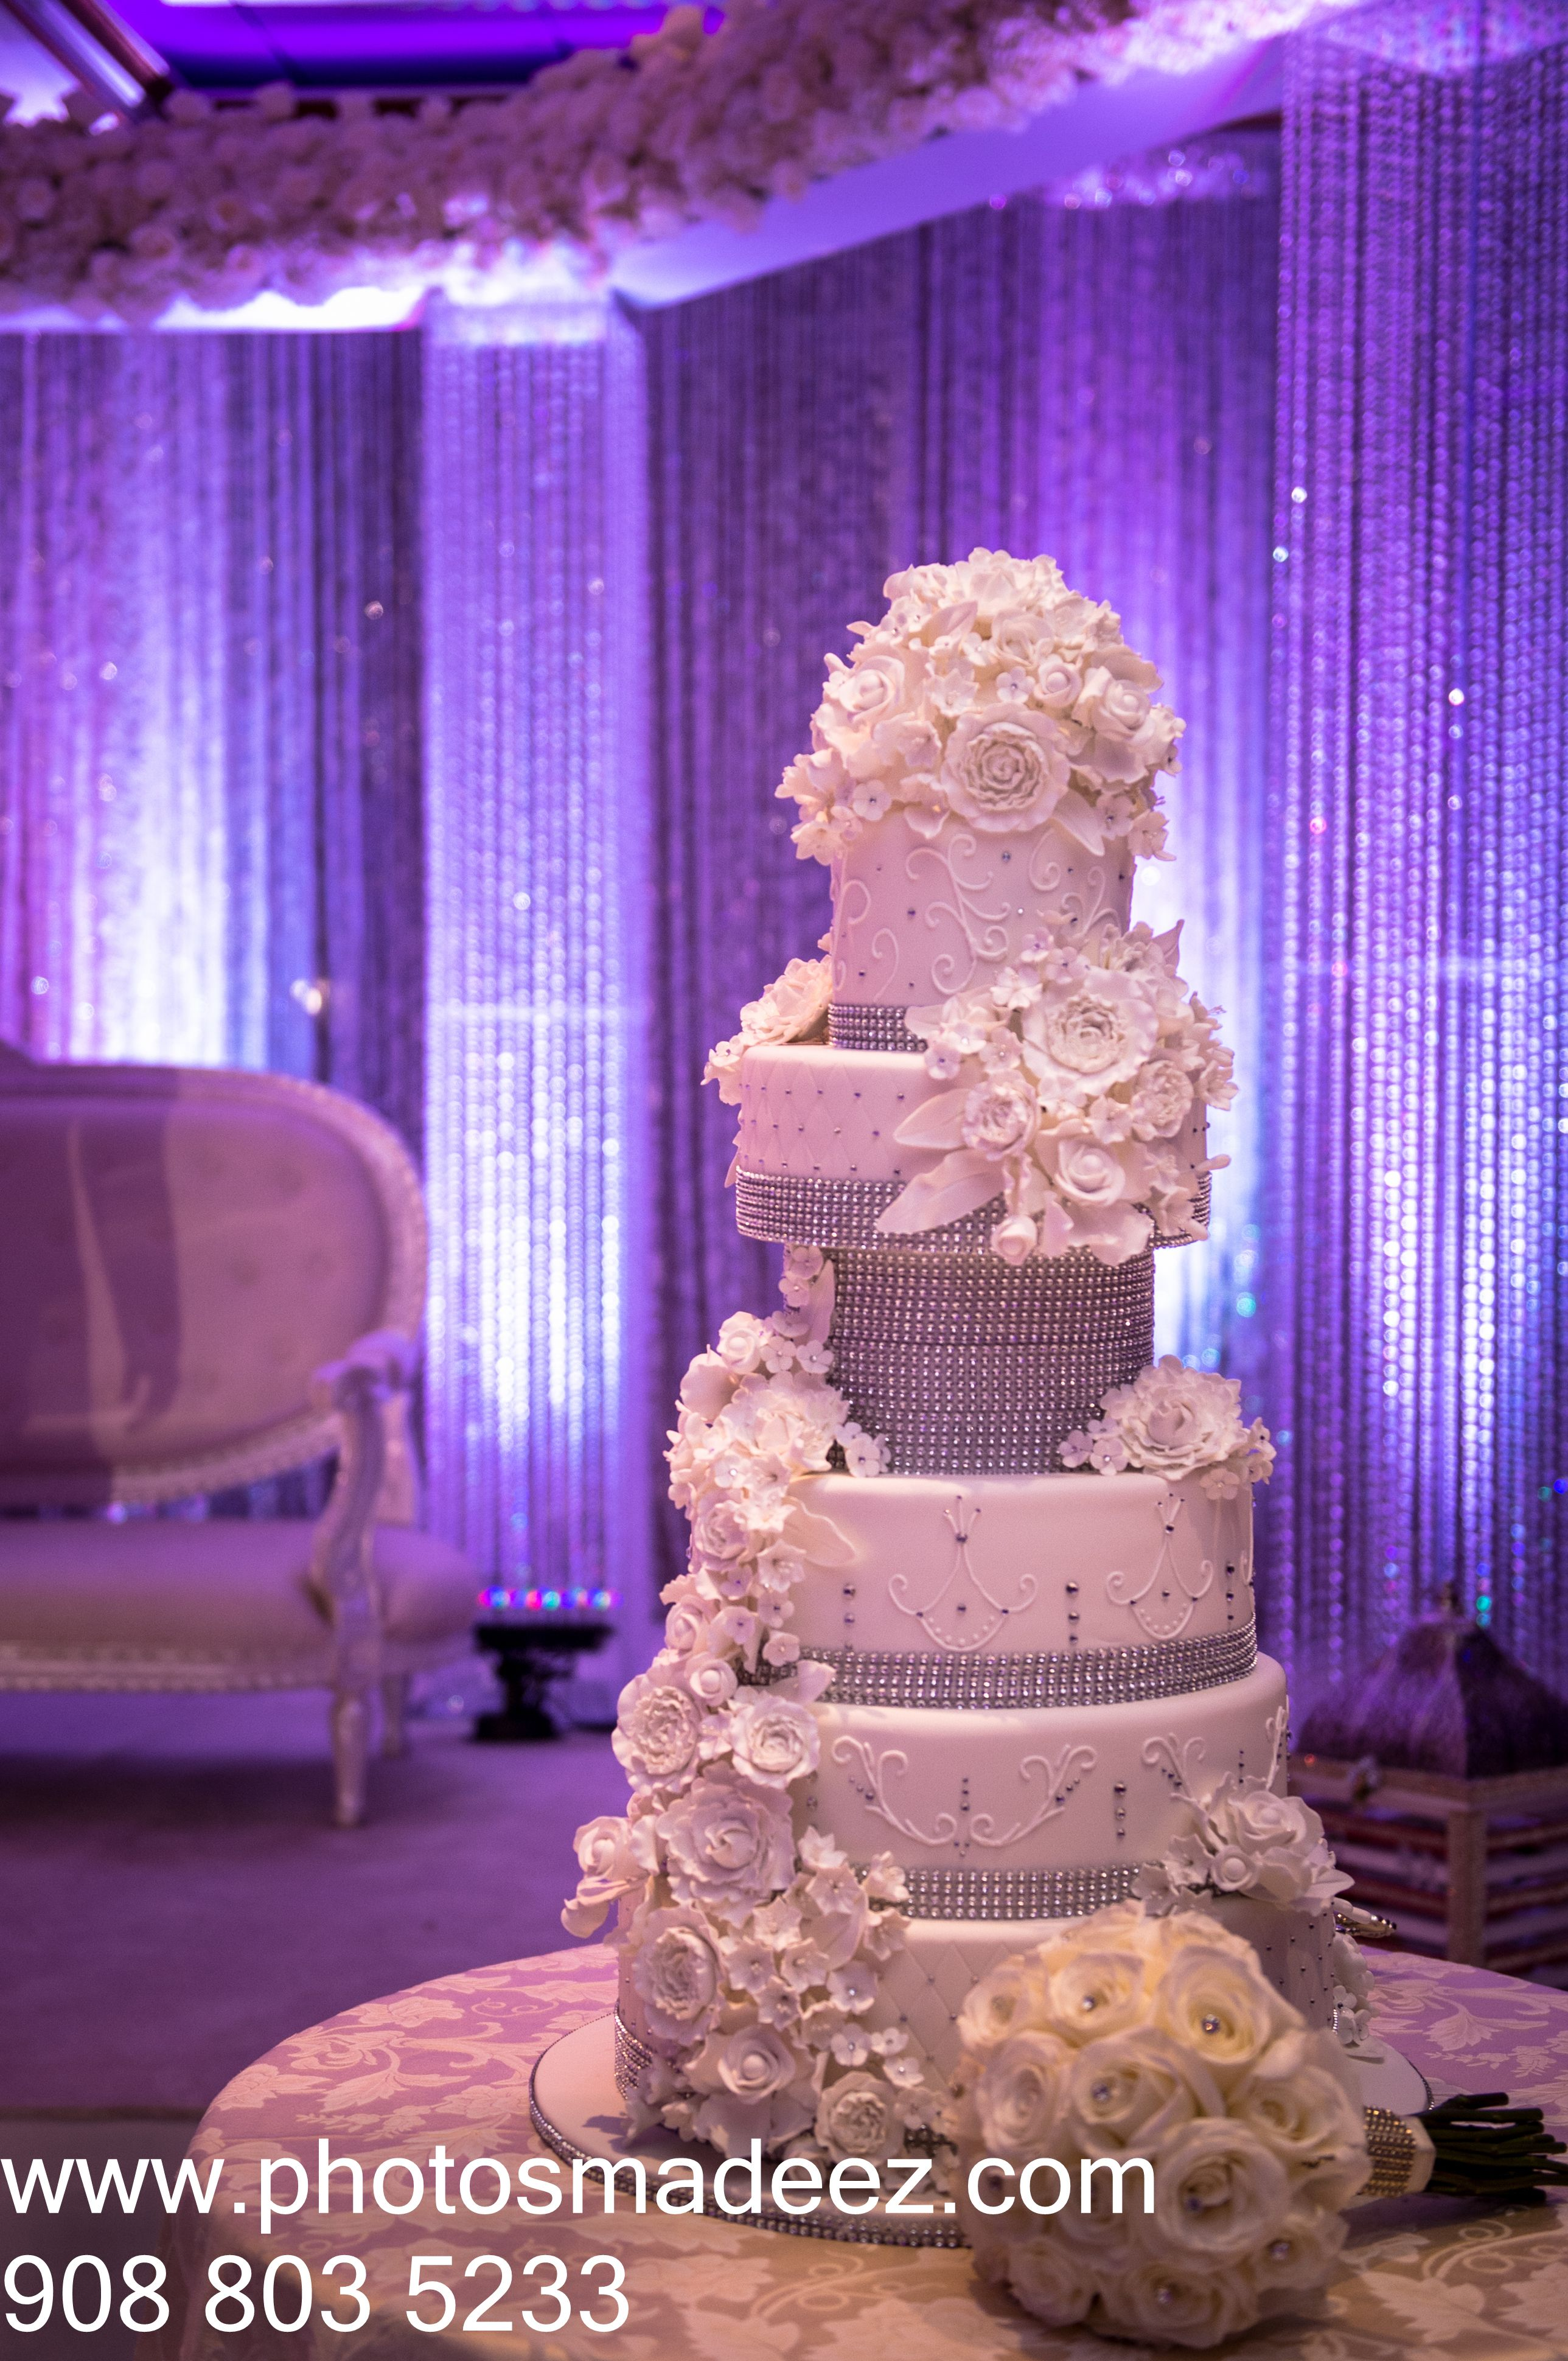 Beautiful Wedding Cake At The VIP Country Club